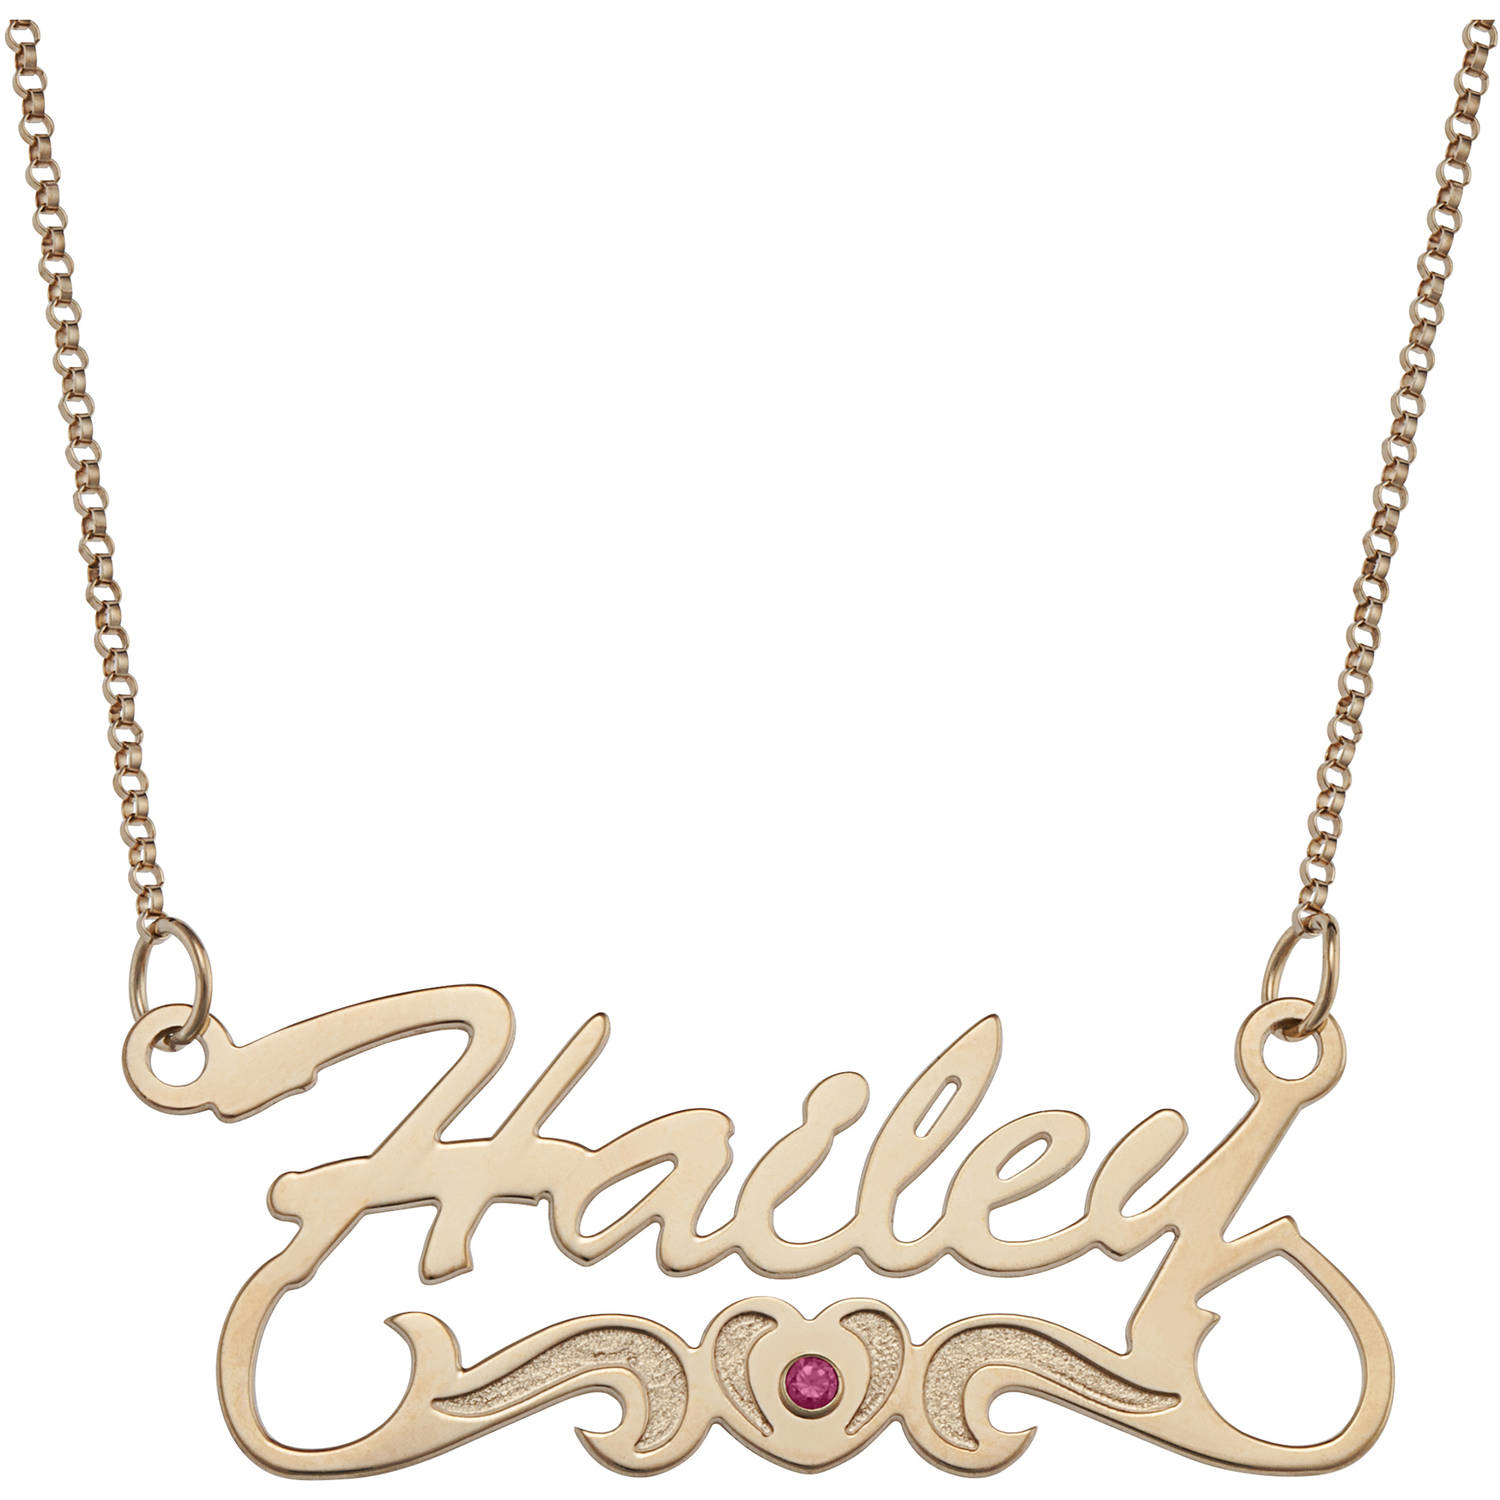 personalized necklaces personalized script name with birthstone heart tail 14kt gold-plated  necklace, 18 qgrkxtx